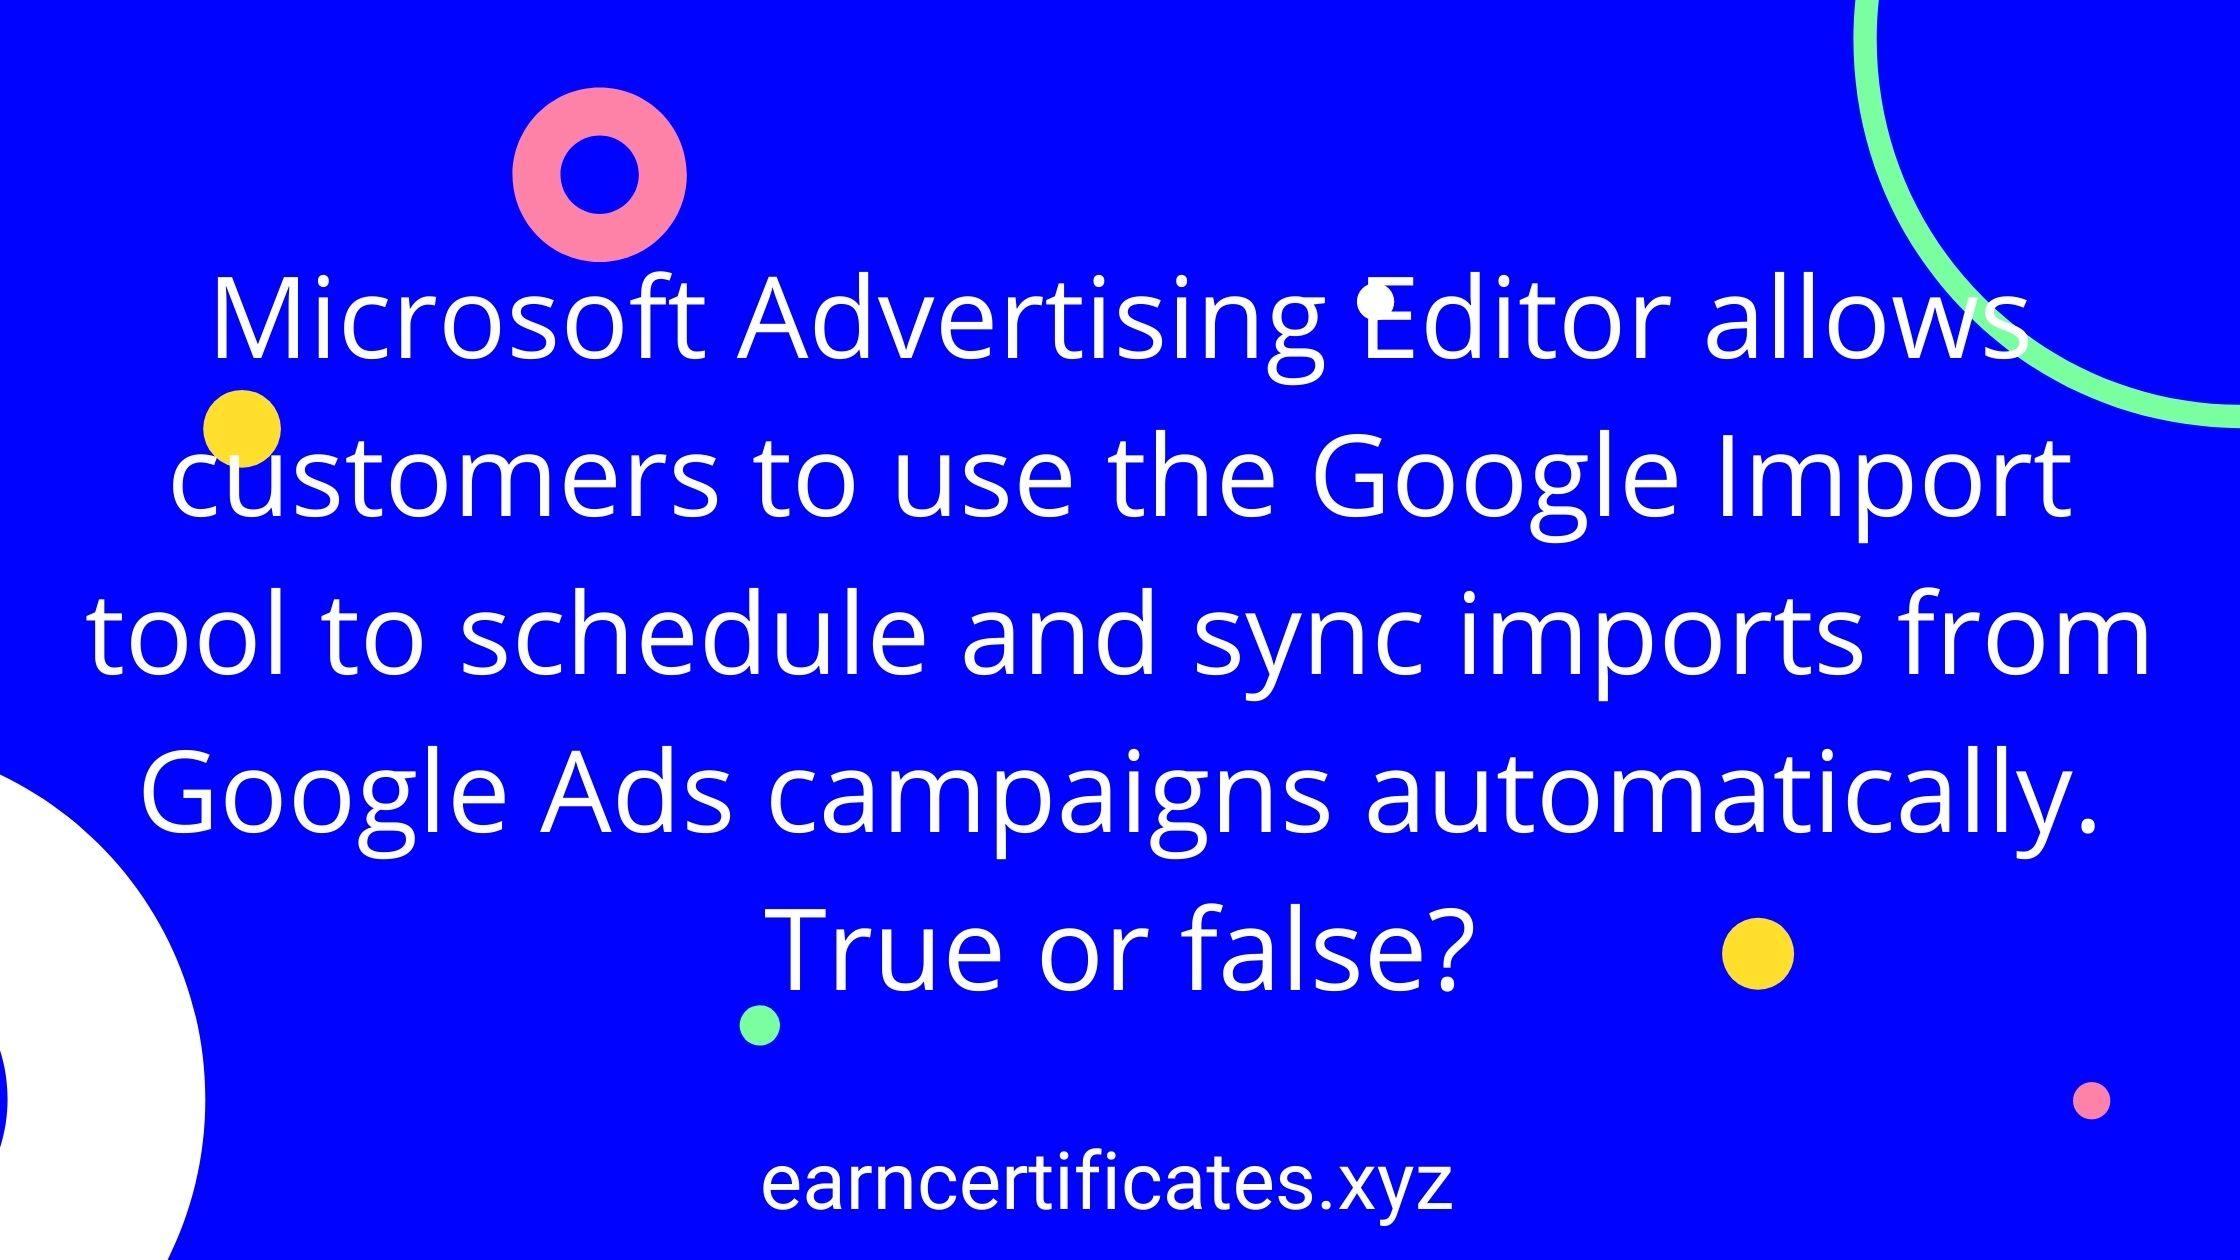 Microsoft Advertising Editor allows customers to use the Google Import tool to schedule and sync imports from Google Ads campaigns automatically. True or false?